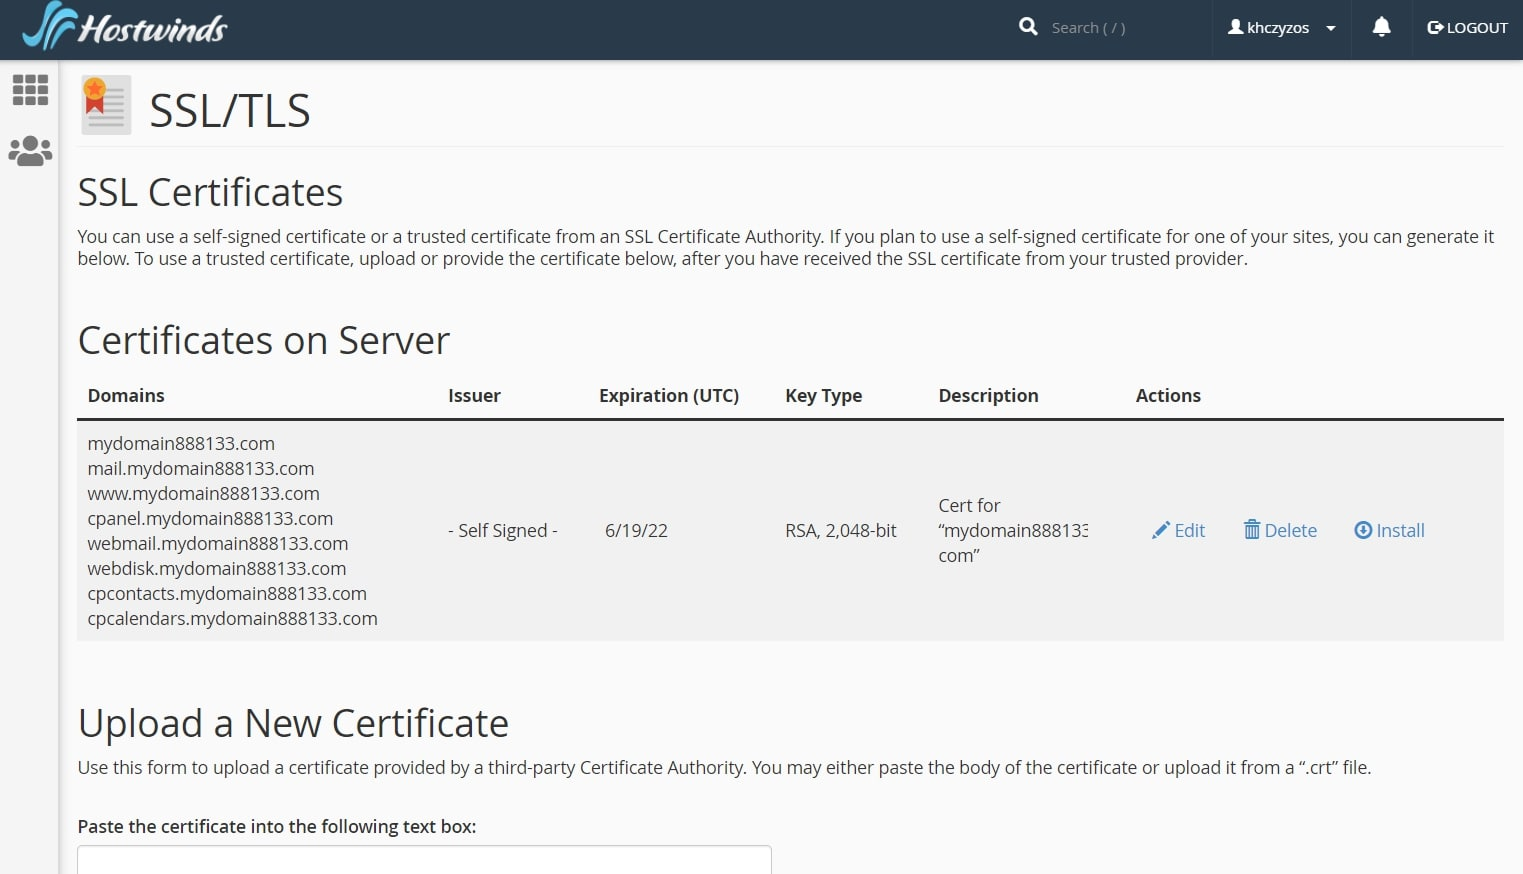 Hostwinds' settings page for SSL certificates